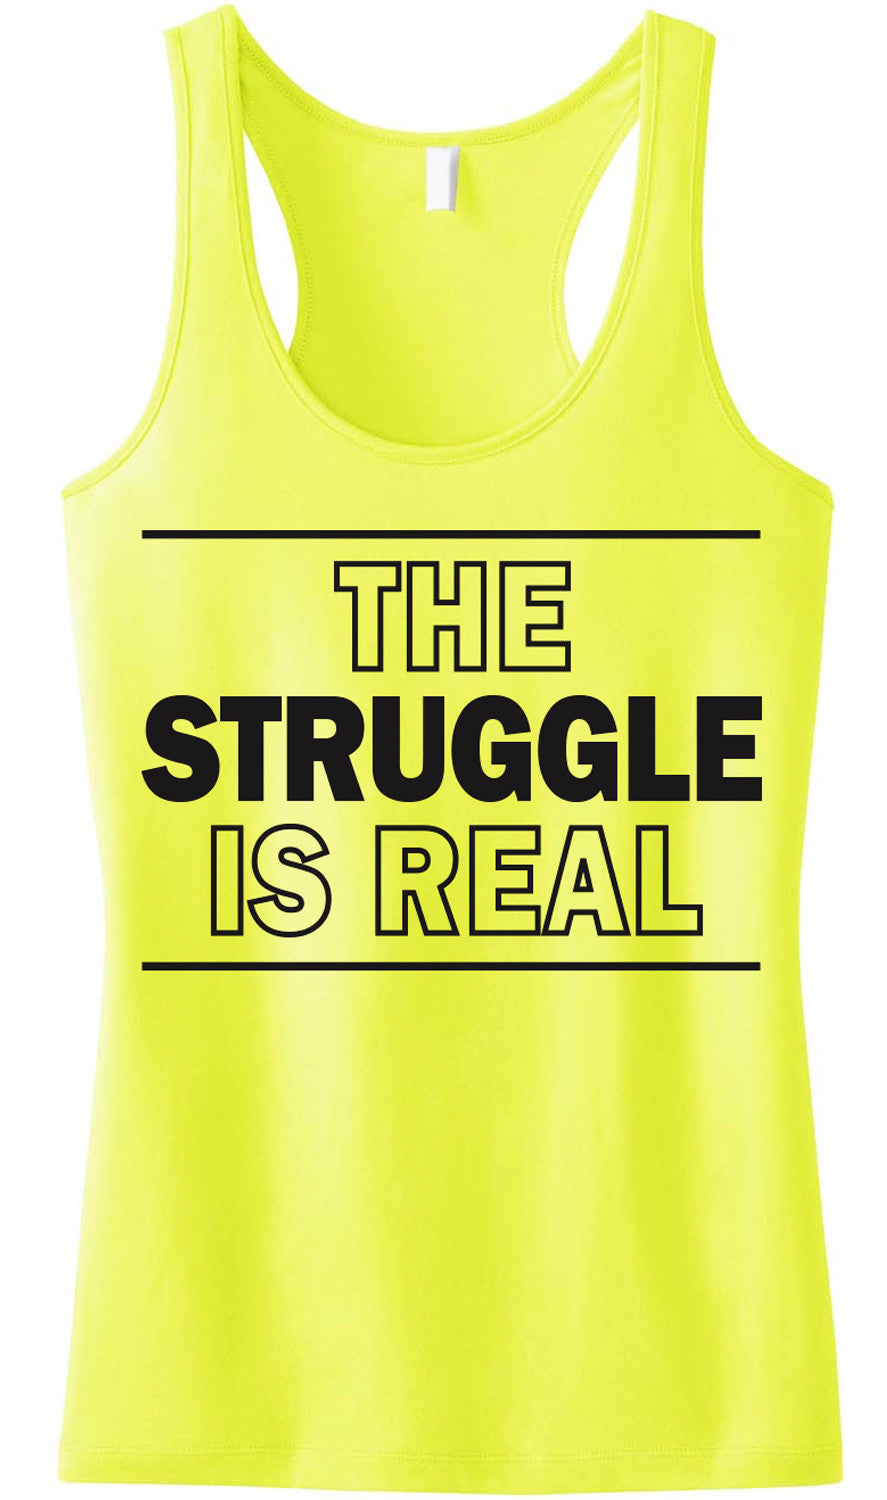 The Struggle is Real Tank Top Yellow Racerback